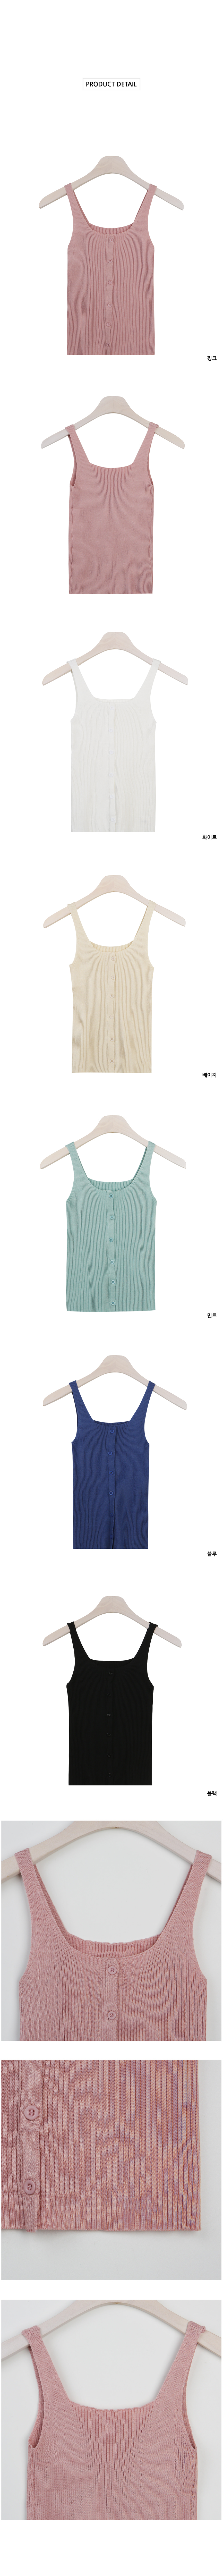 Square Neck Button Knitwear Sleeveless T#YW173